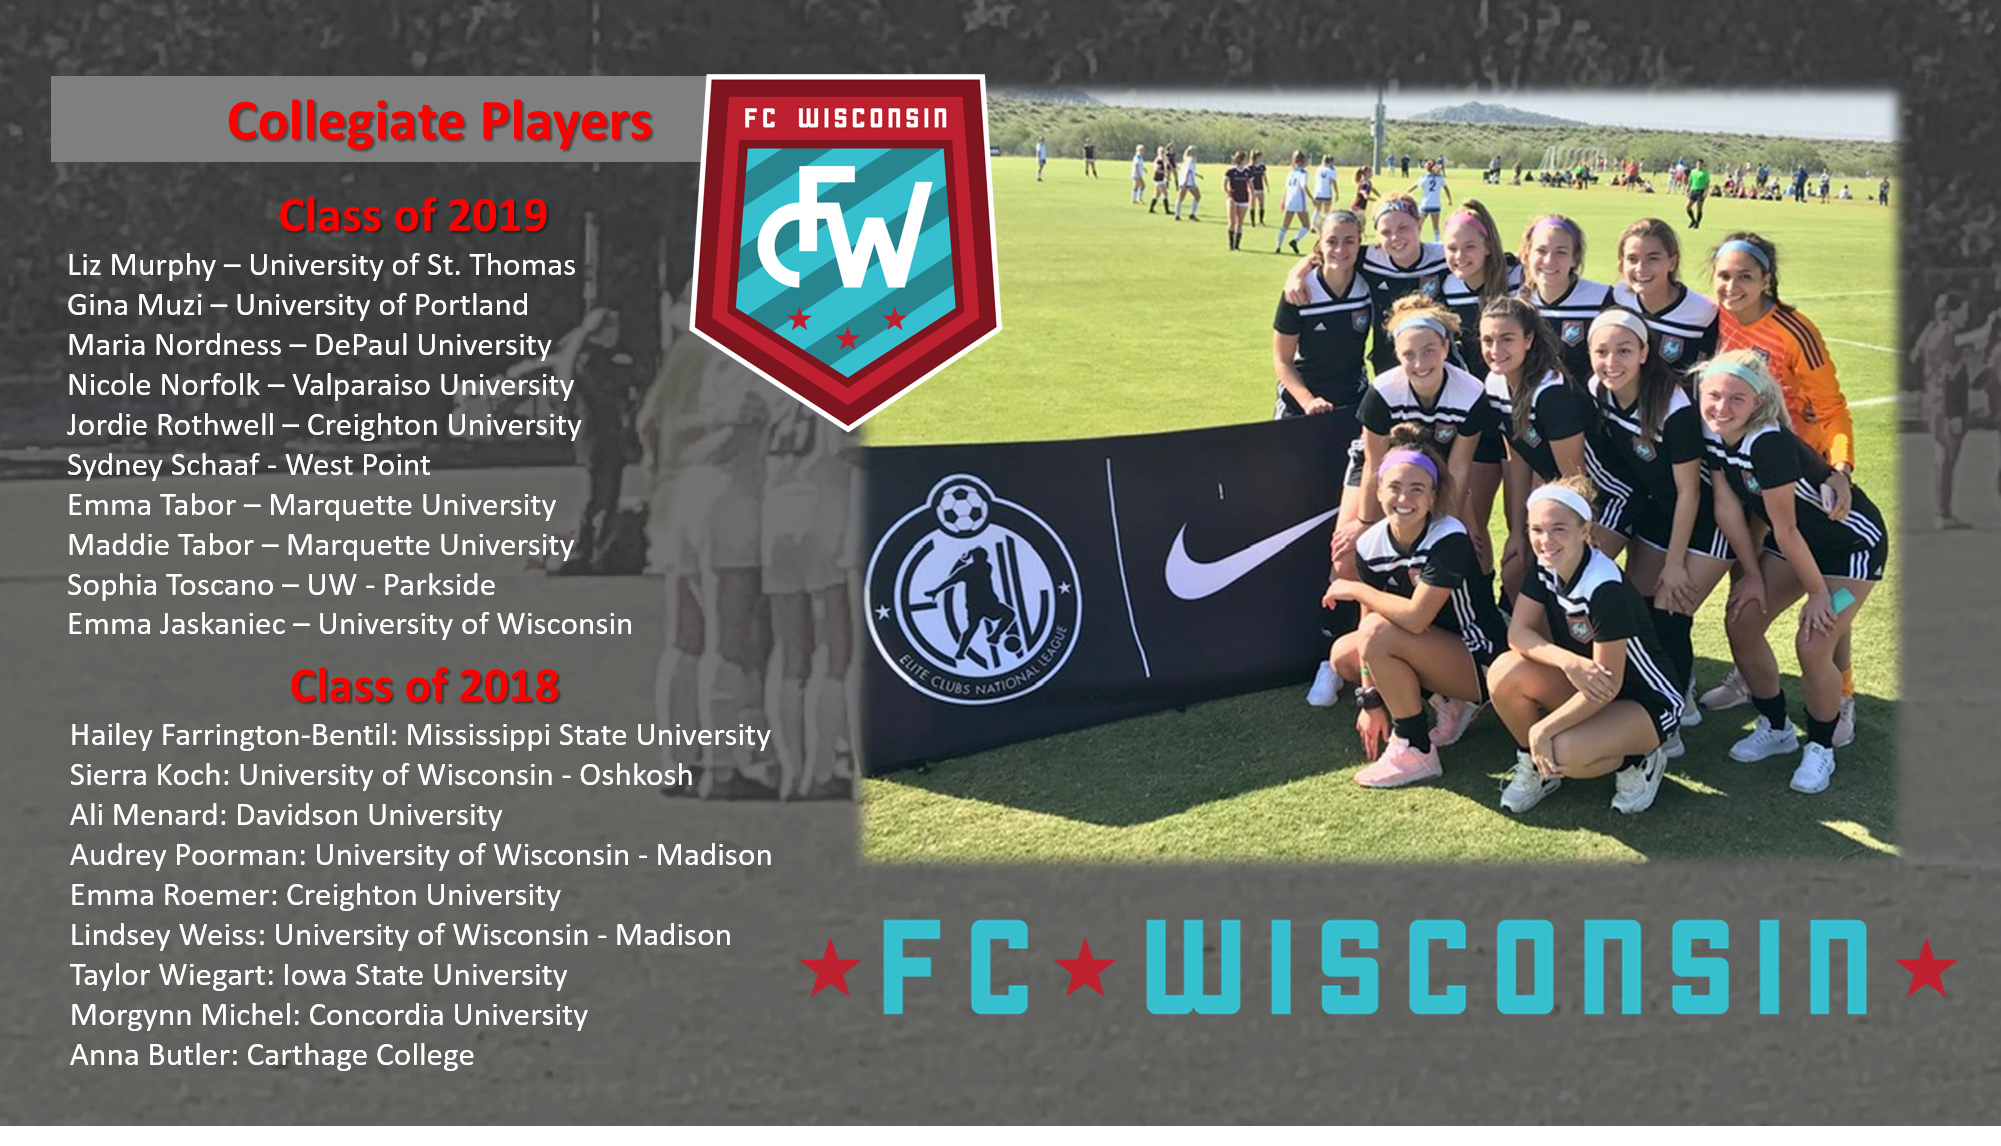 Why Play at FC Wisconsin?